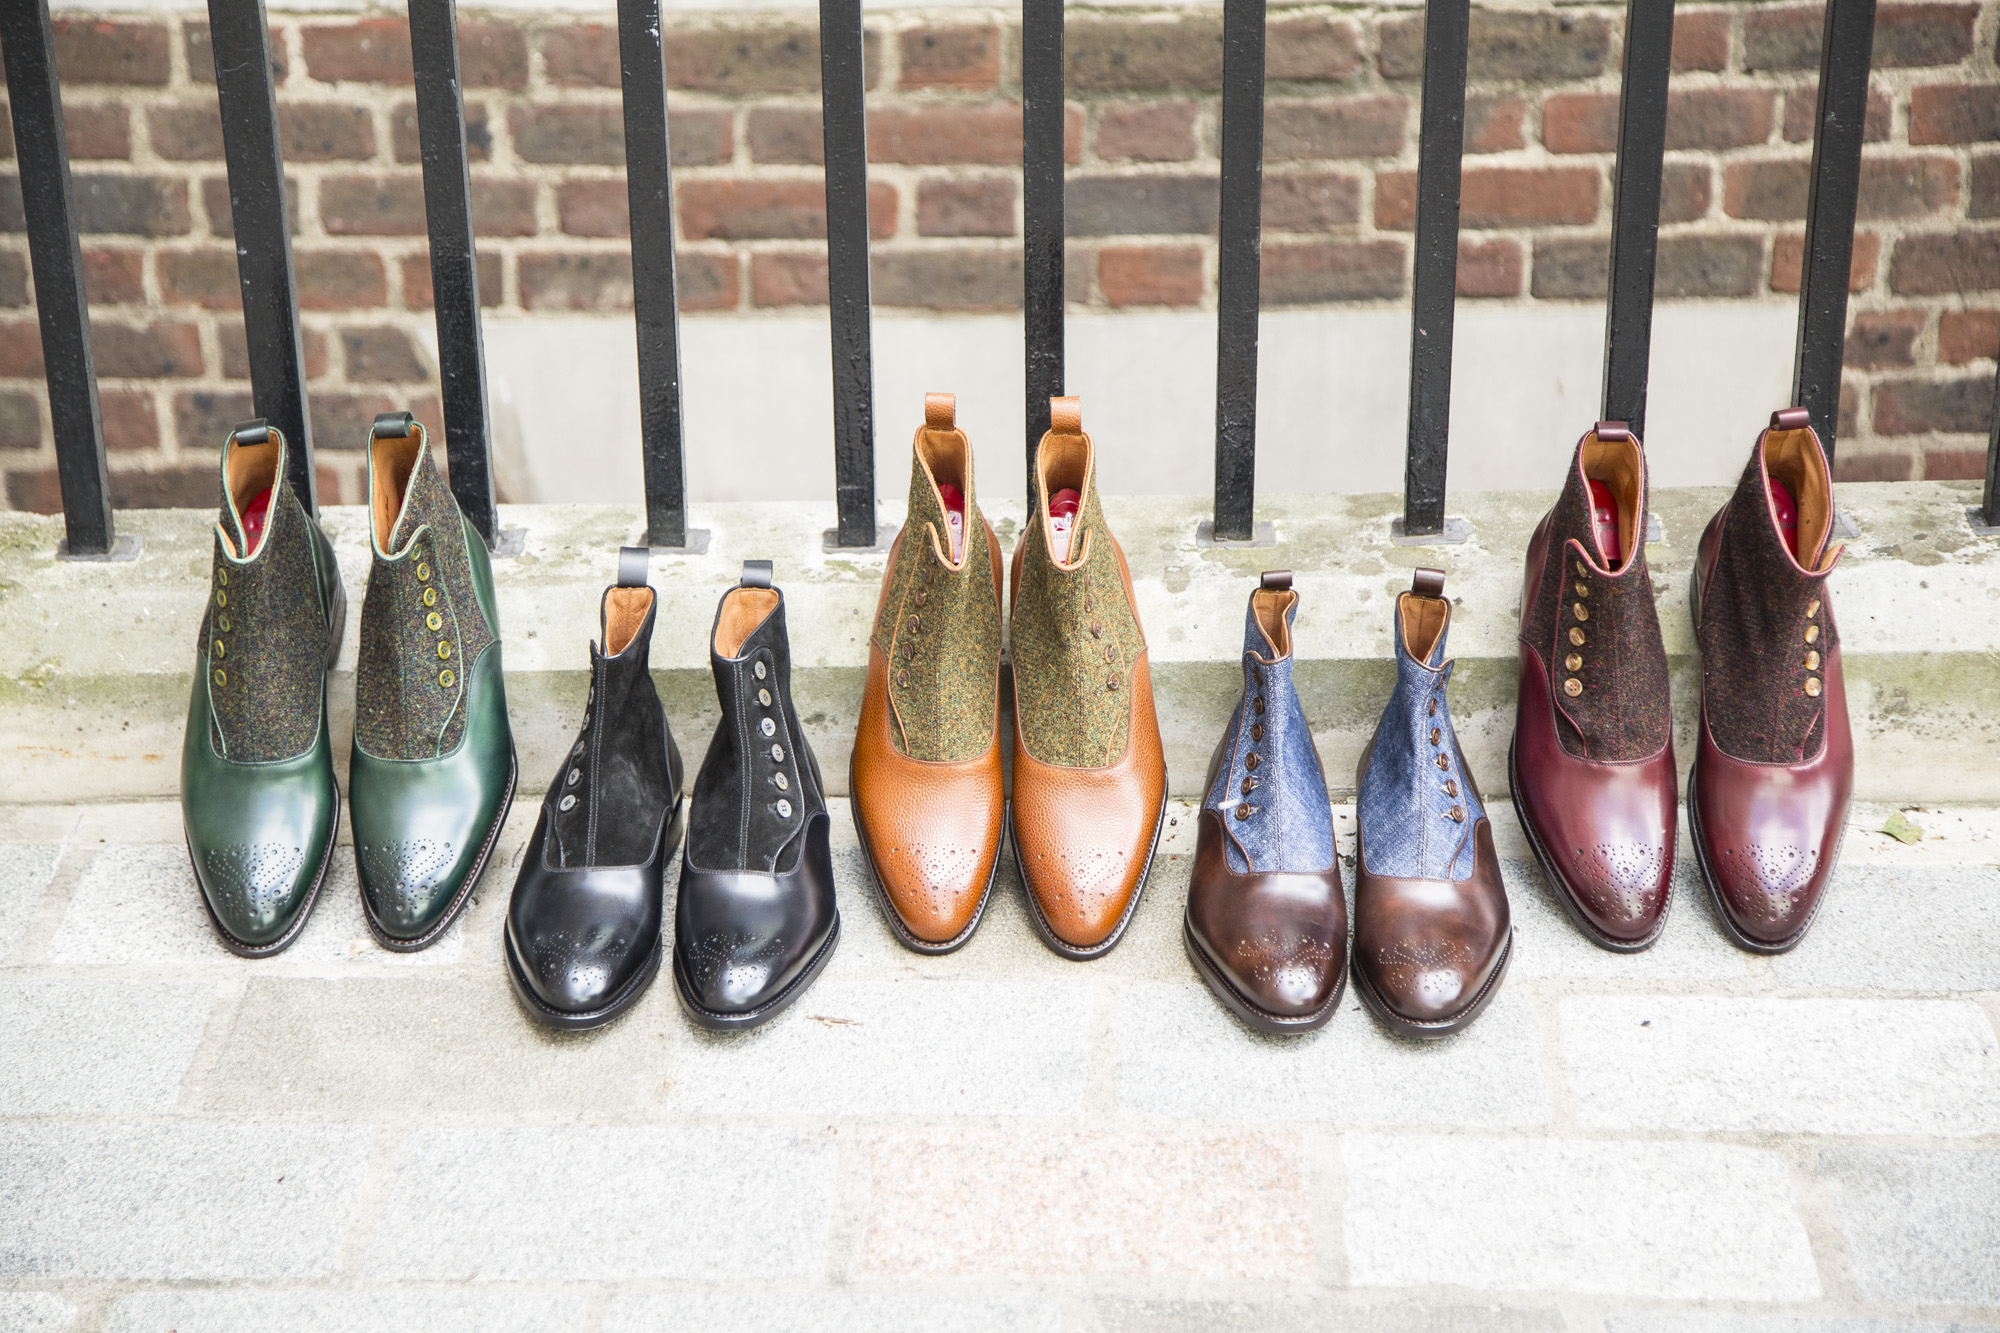 j-fitzpatrick-footwear-collection-august-16-2016-hero-181